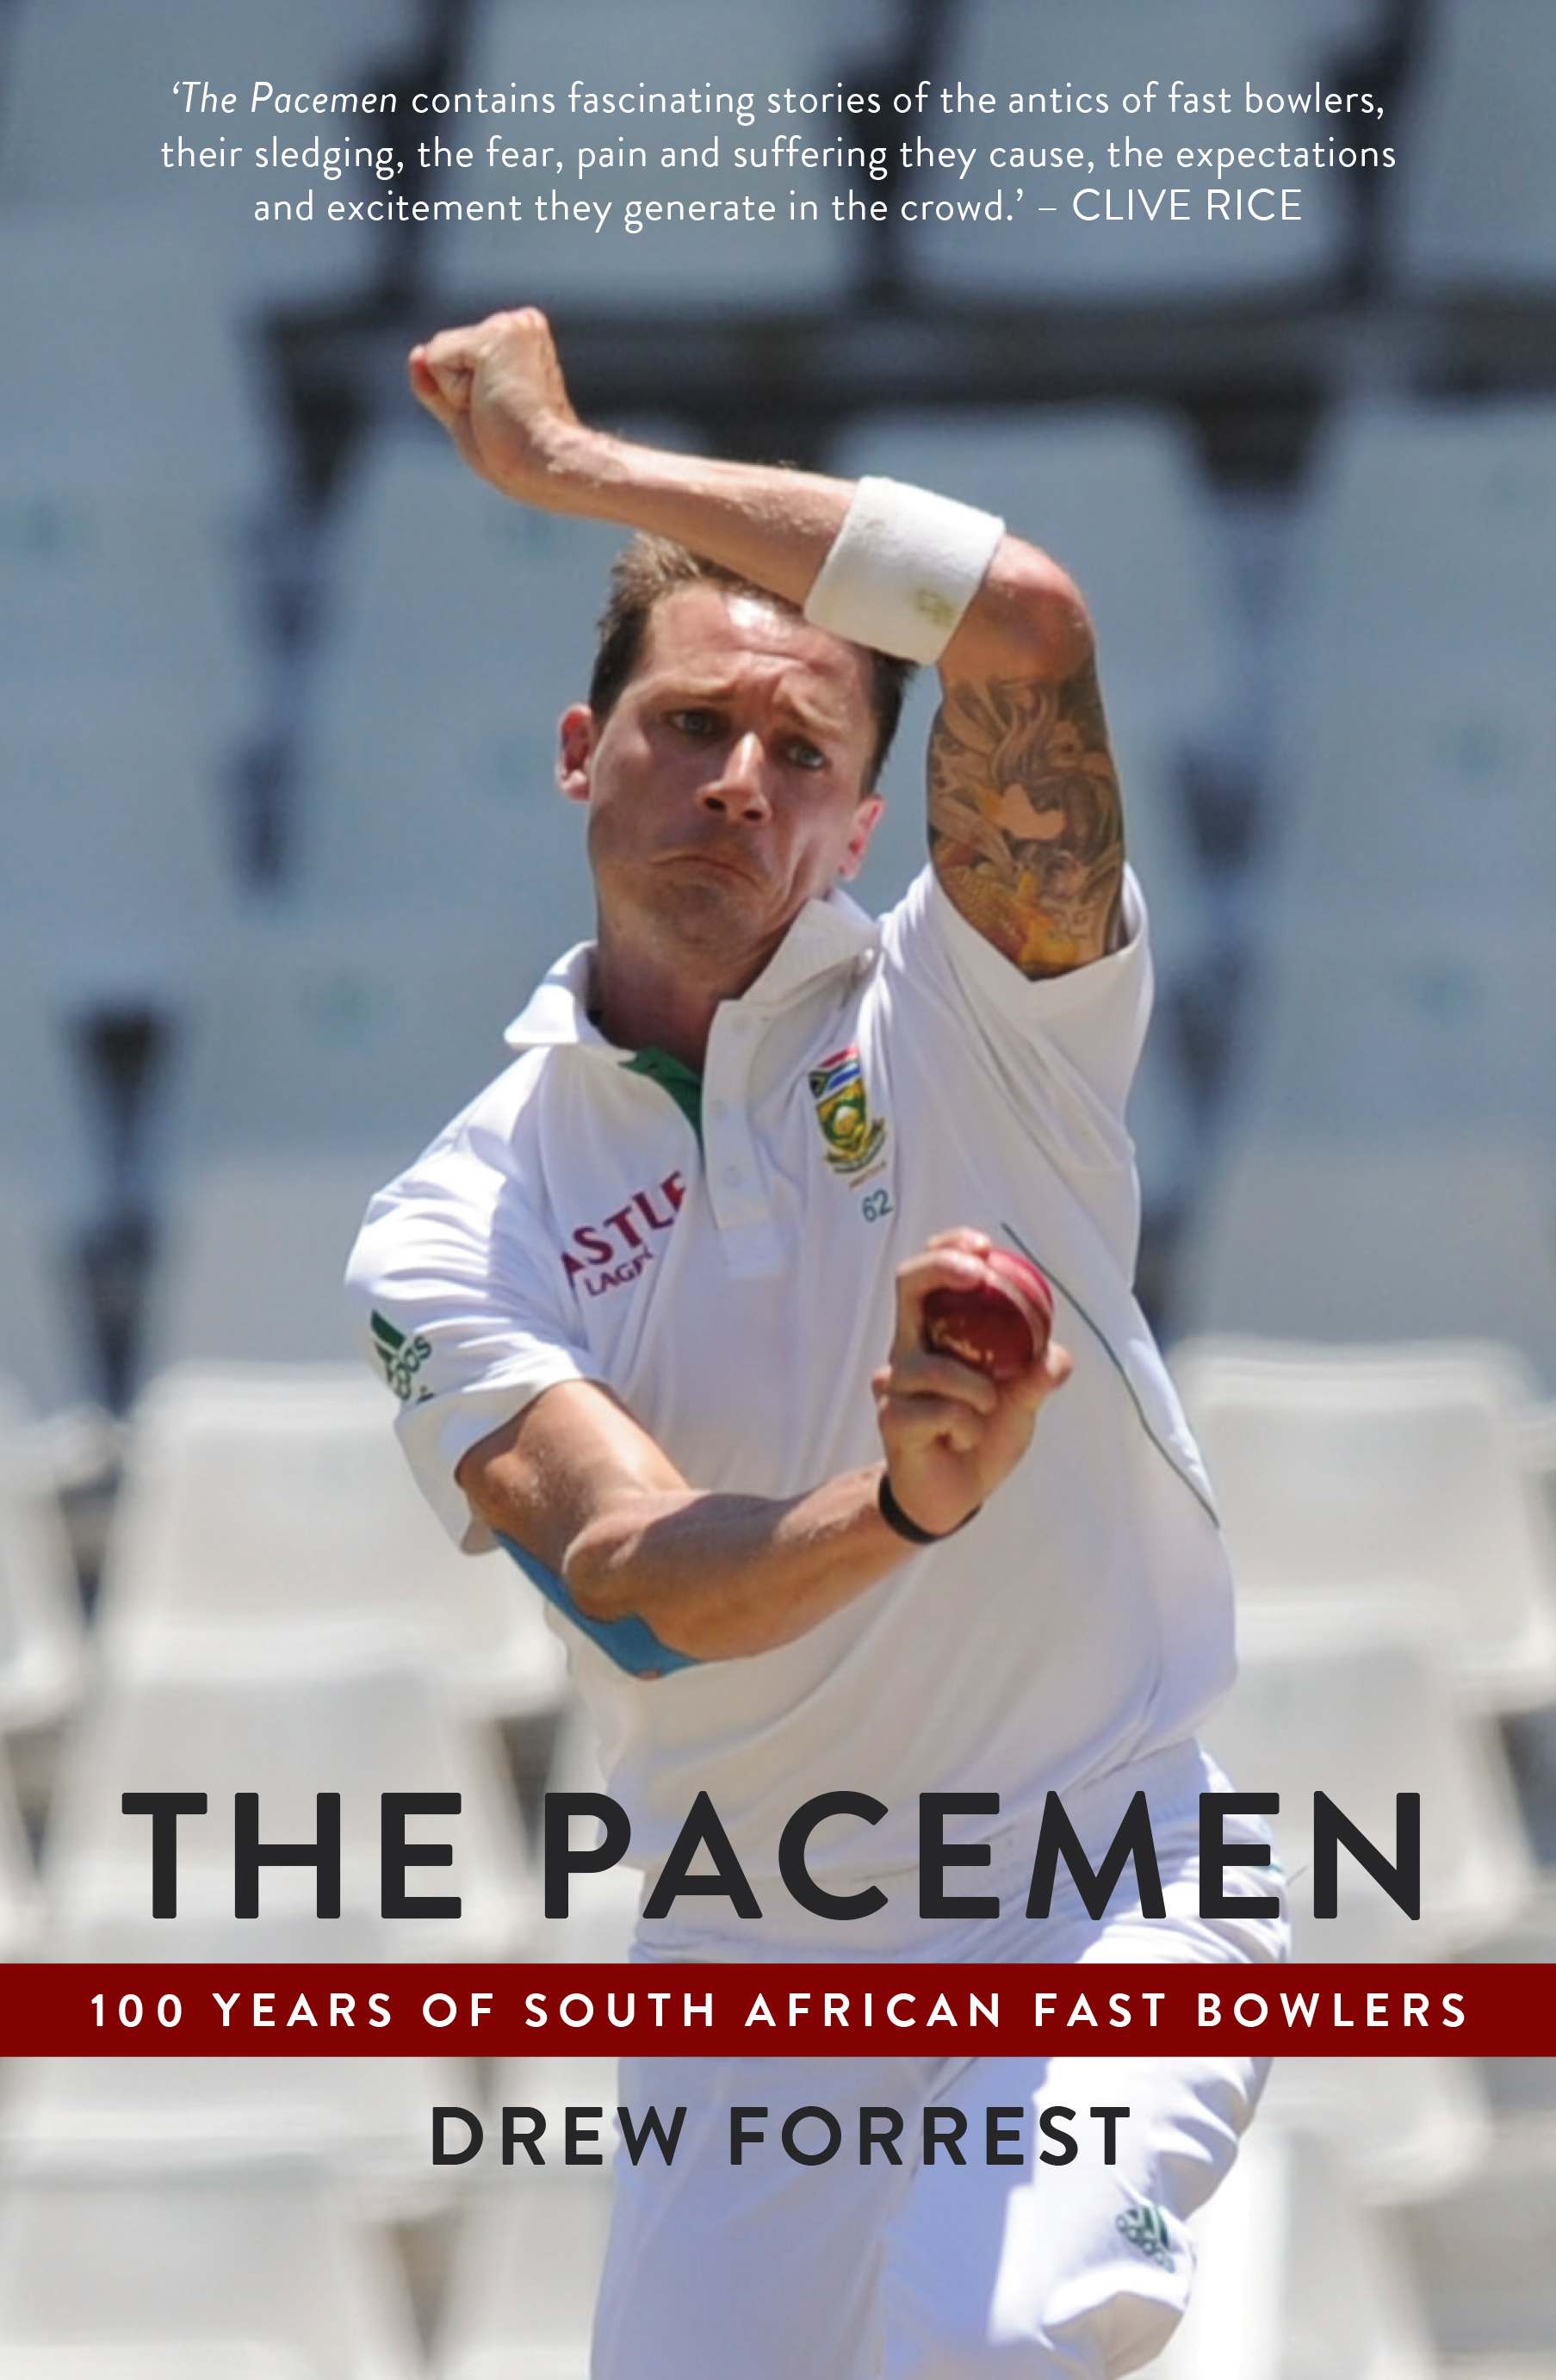 The Pacemen 100 Years of South African Fast Bowlers